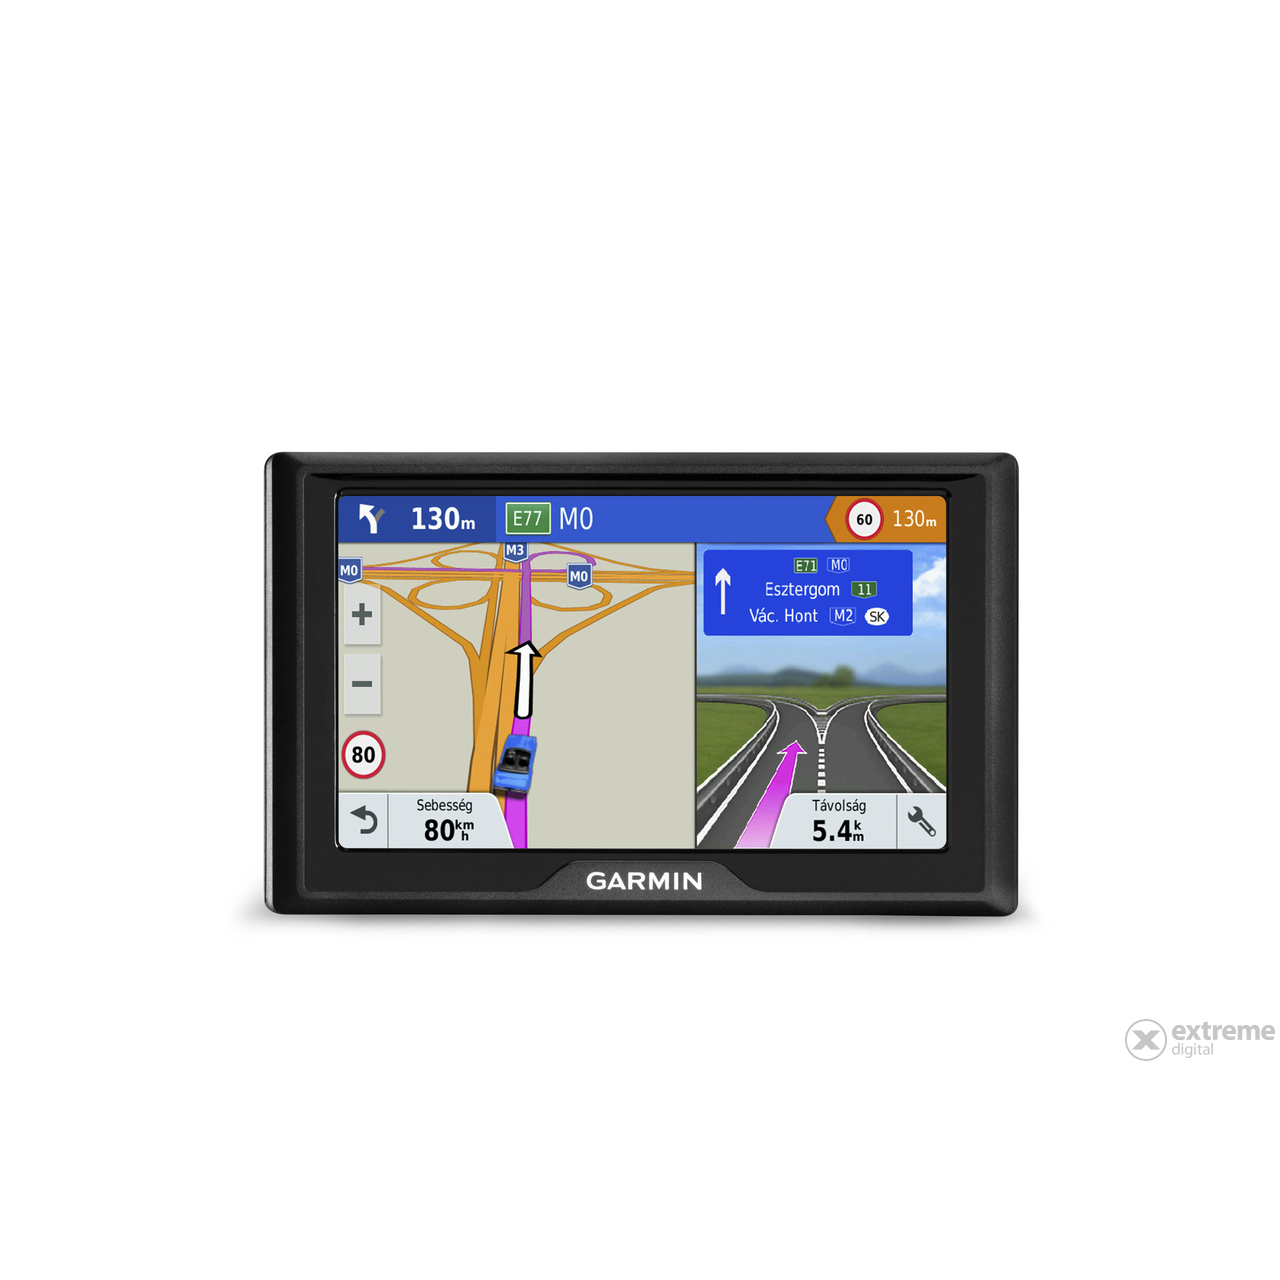 garmin drive 50 lm lifetime maps 5 navigacija zemljevid celotne evrope extreme digital. Black Bedroom Furniture Sets. Home Design Ideas